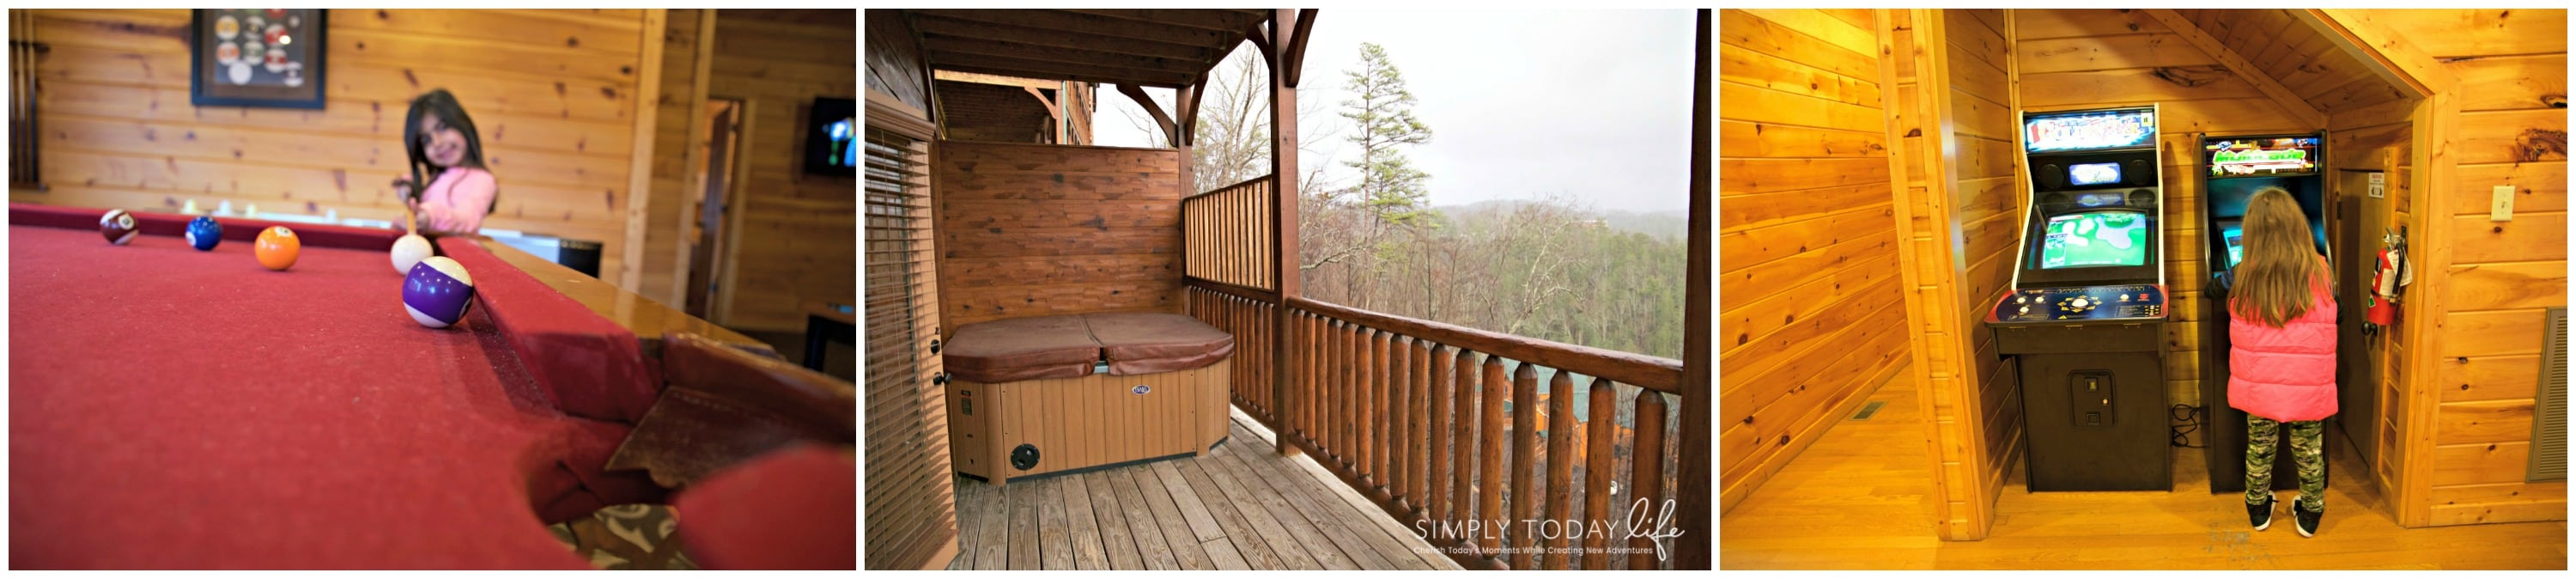 Luxury Family Cabins in Gatlinburg TN with Two Stories - simplytodaylife.com